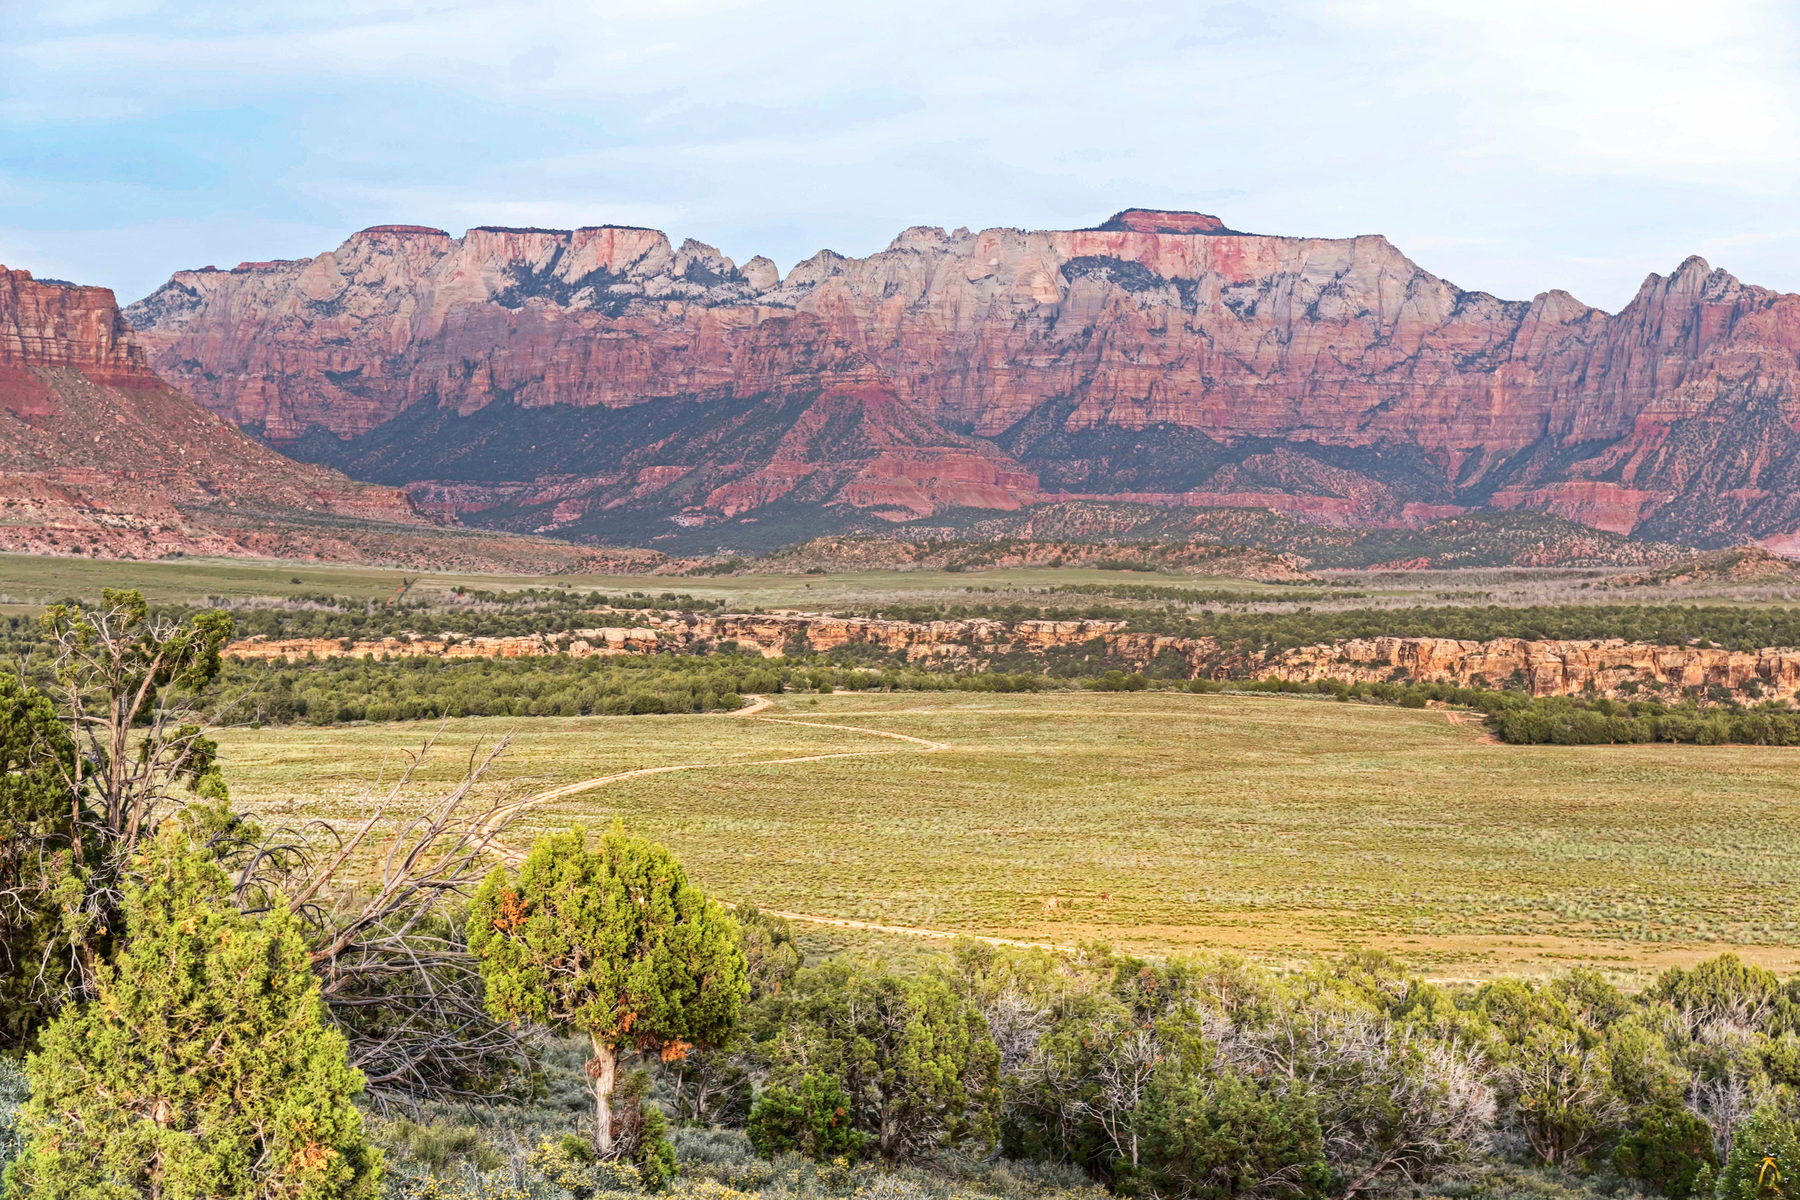 Đất đai vì Bán tại 100 Acre Retreat in Washington County next to Zion National Park 100 Acres Dalton Wash Rd Virgin, Utah, 84779 Hoa Kỳ